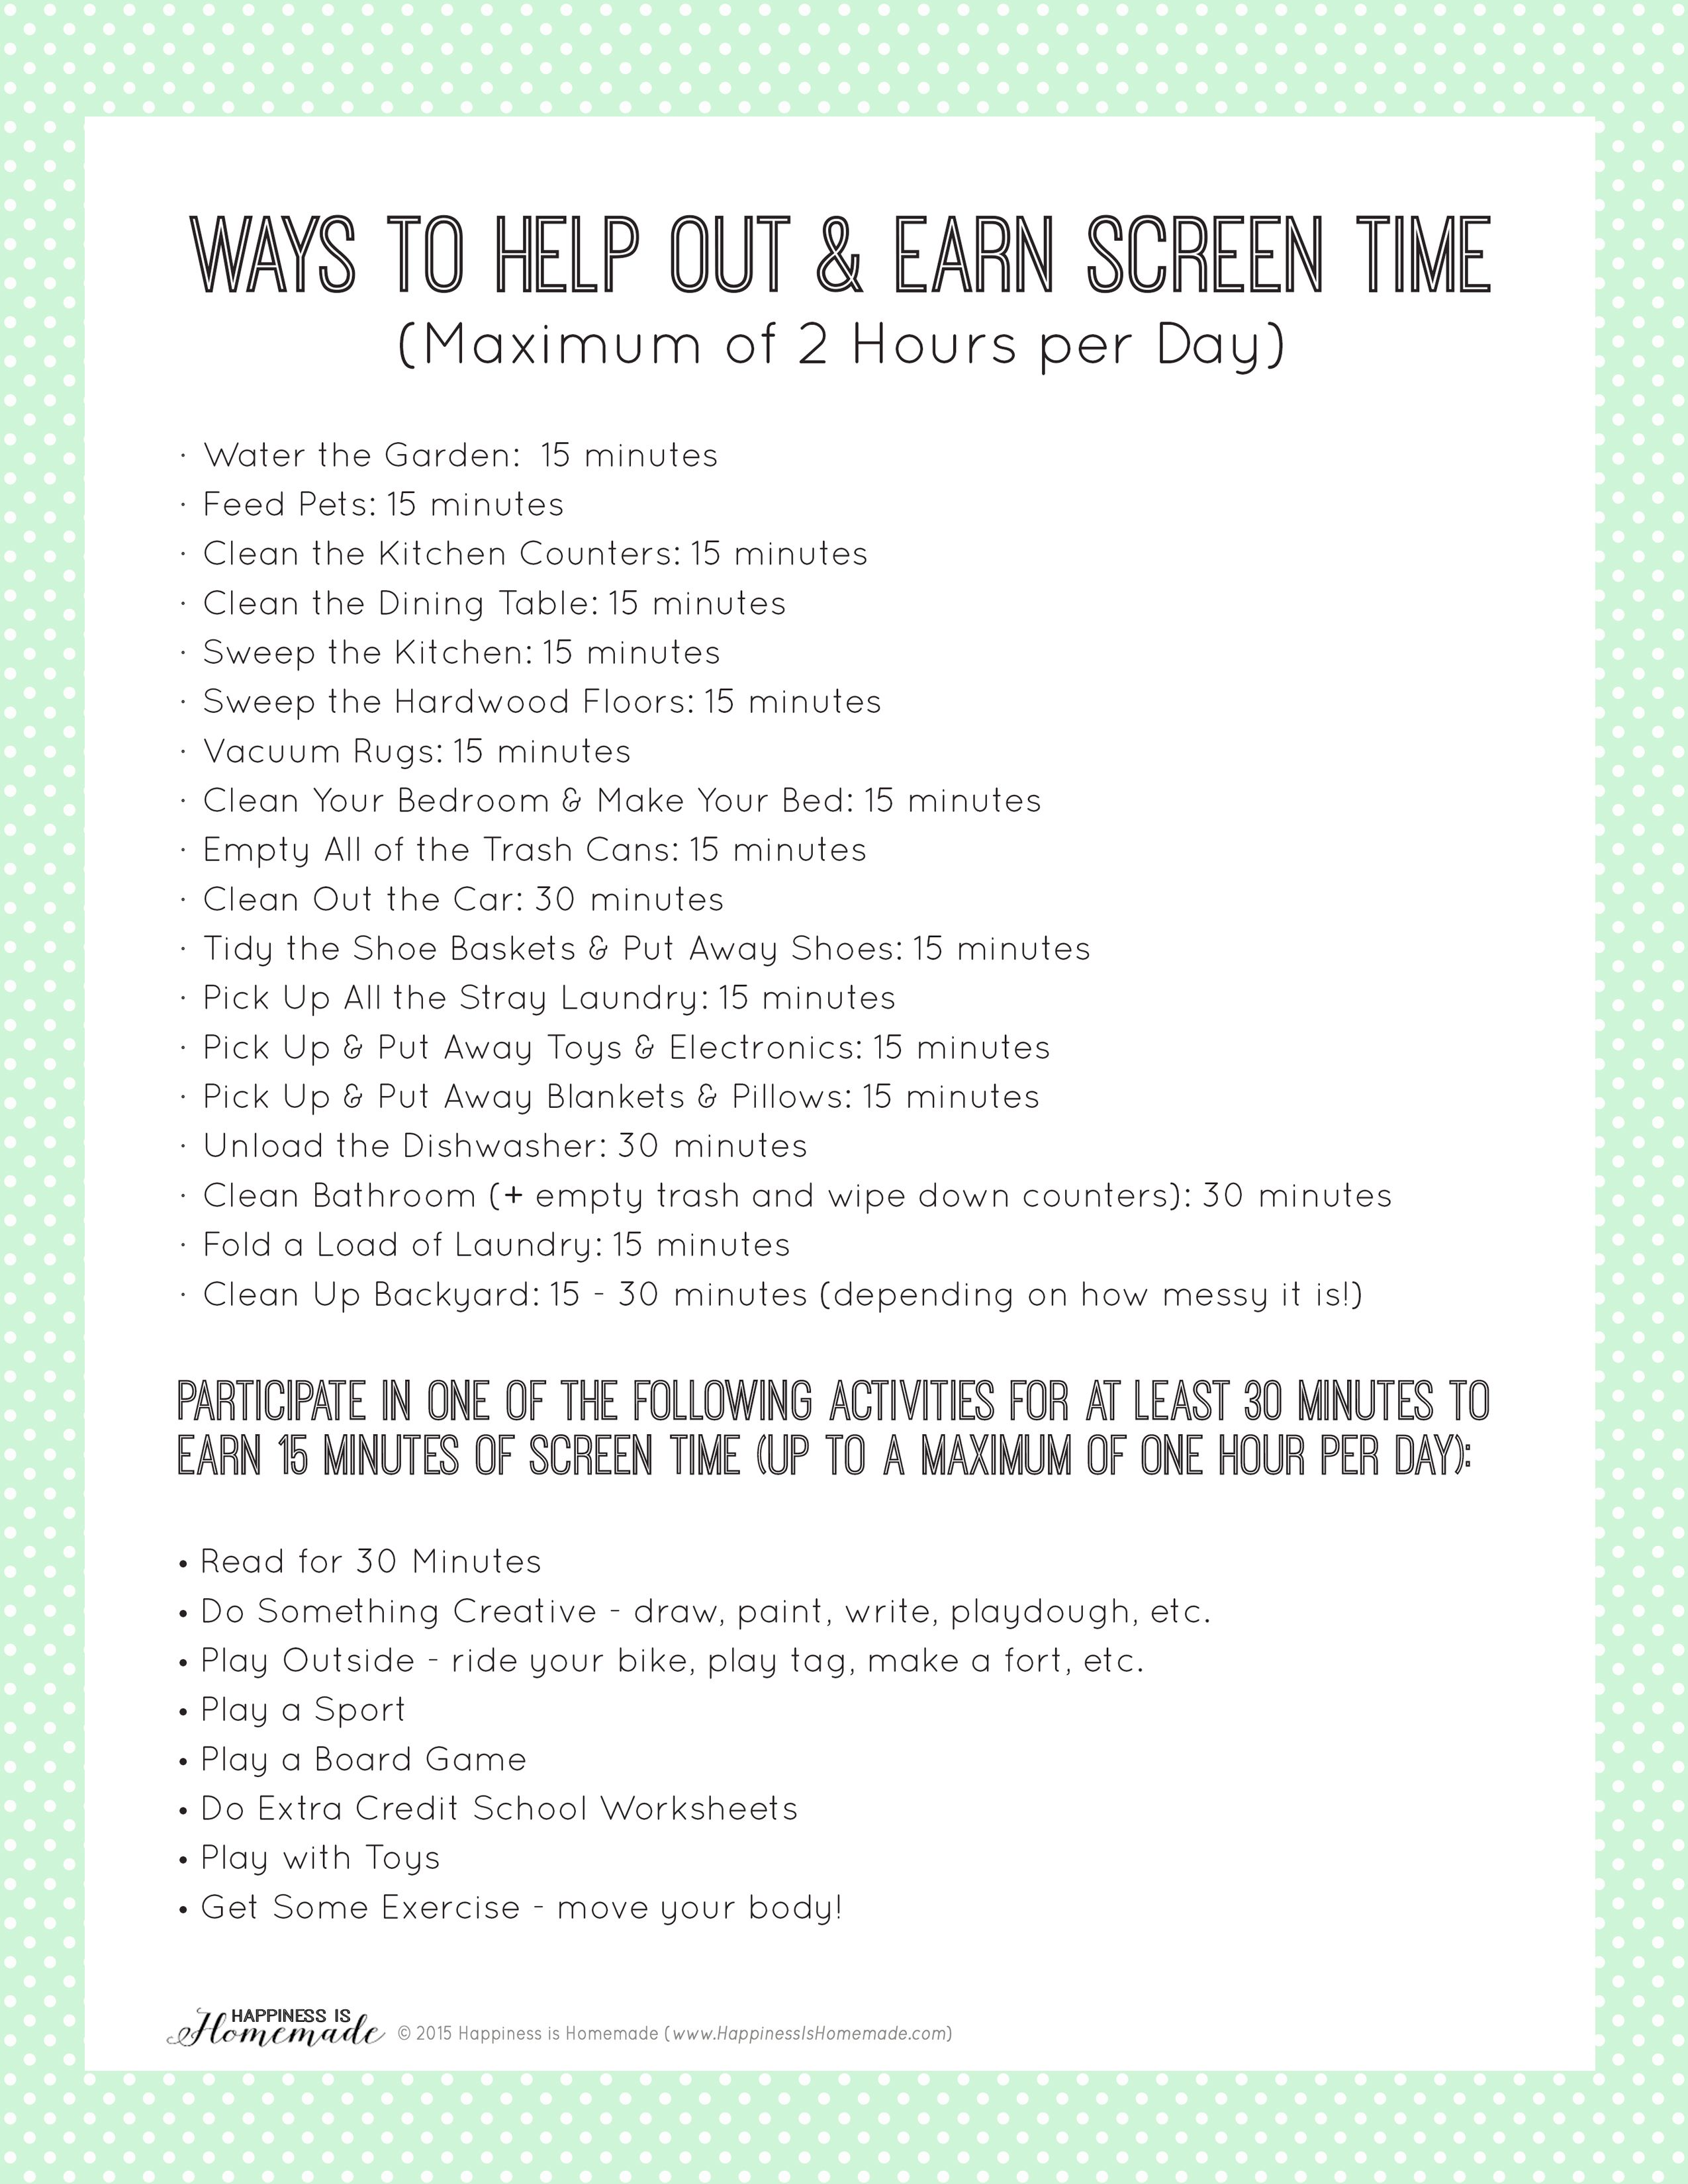 image about Screen Time Rules Printable identified as Printable Chore Listing in direction of Generate Display Period Chore Charts for